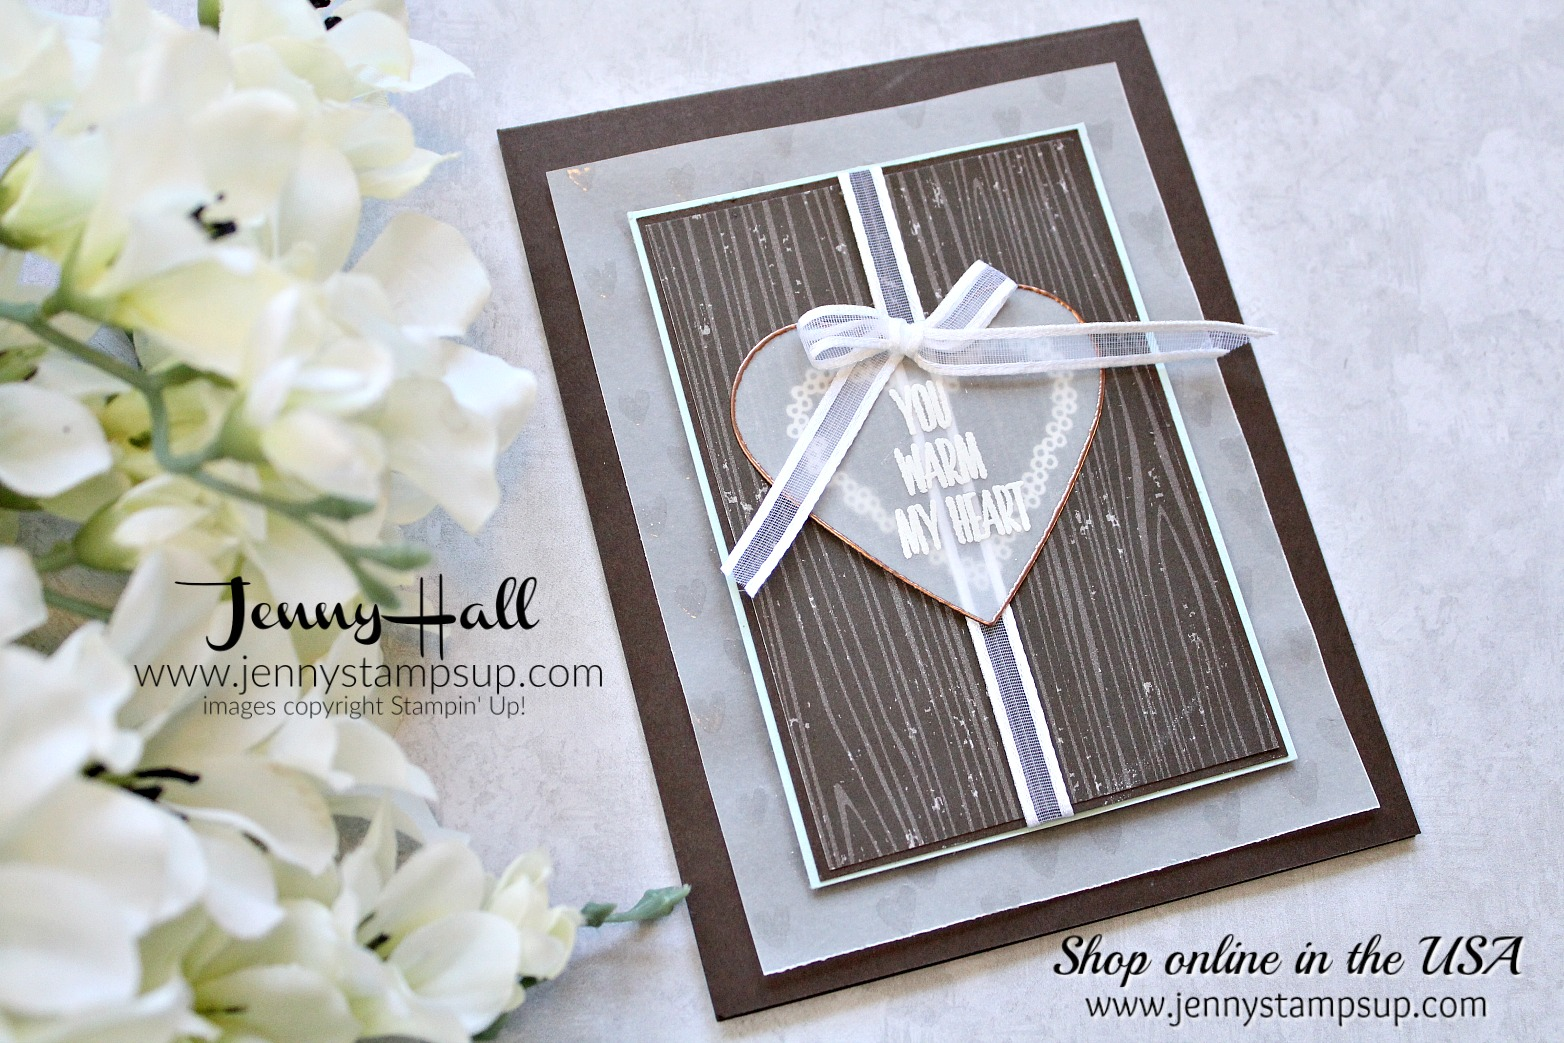 Embossed Vellum card by Jenny Hall at www.jennyhalldesign.com for #stampinkpaperchallenge #cardmaingchallenge #cardmaking #stampinup #stamping #jennystampsup #jennyhallstampinup #jennyhalldesign #hearthappiness #lovelywishes #paperembossing #vellum #videotutorials #cardmakingvideo #scrapbooking and more!